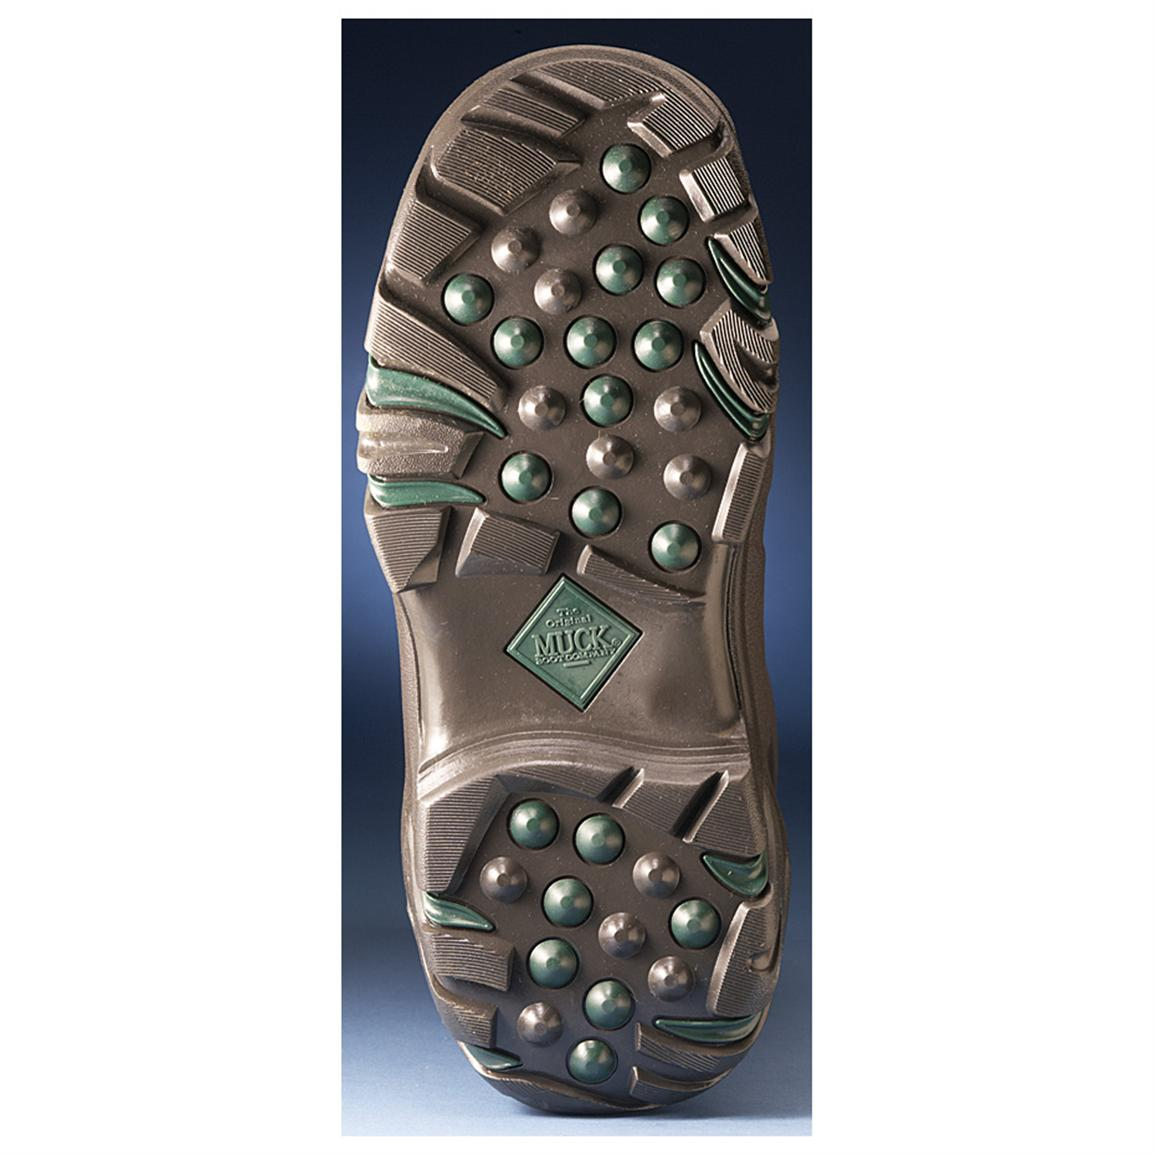 High-abrasion rubber outsole is long-wearing with sure traction